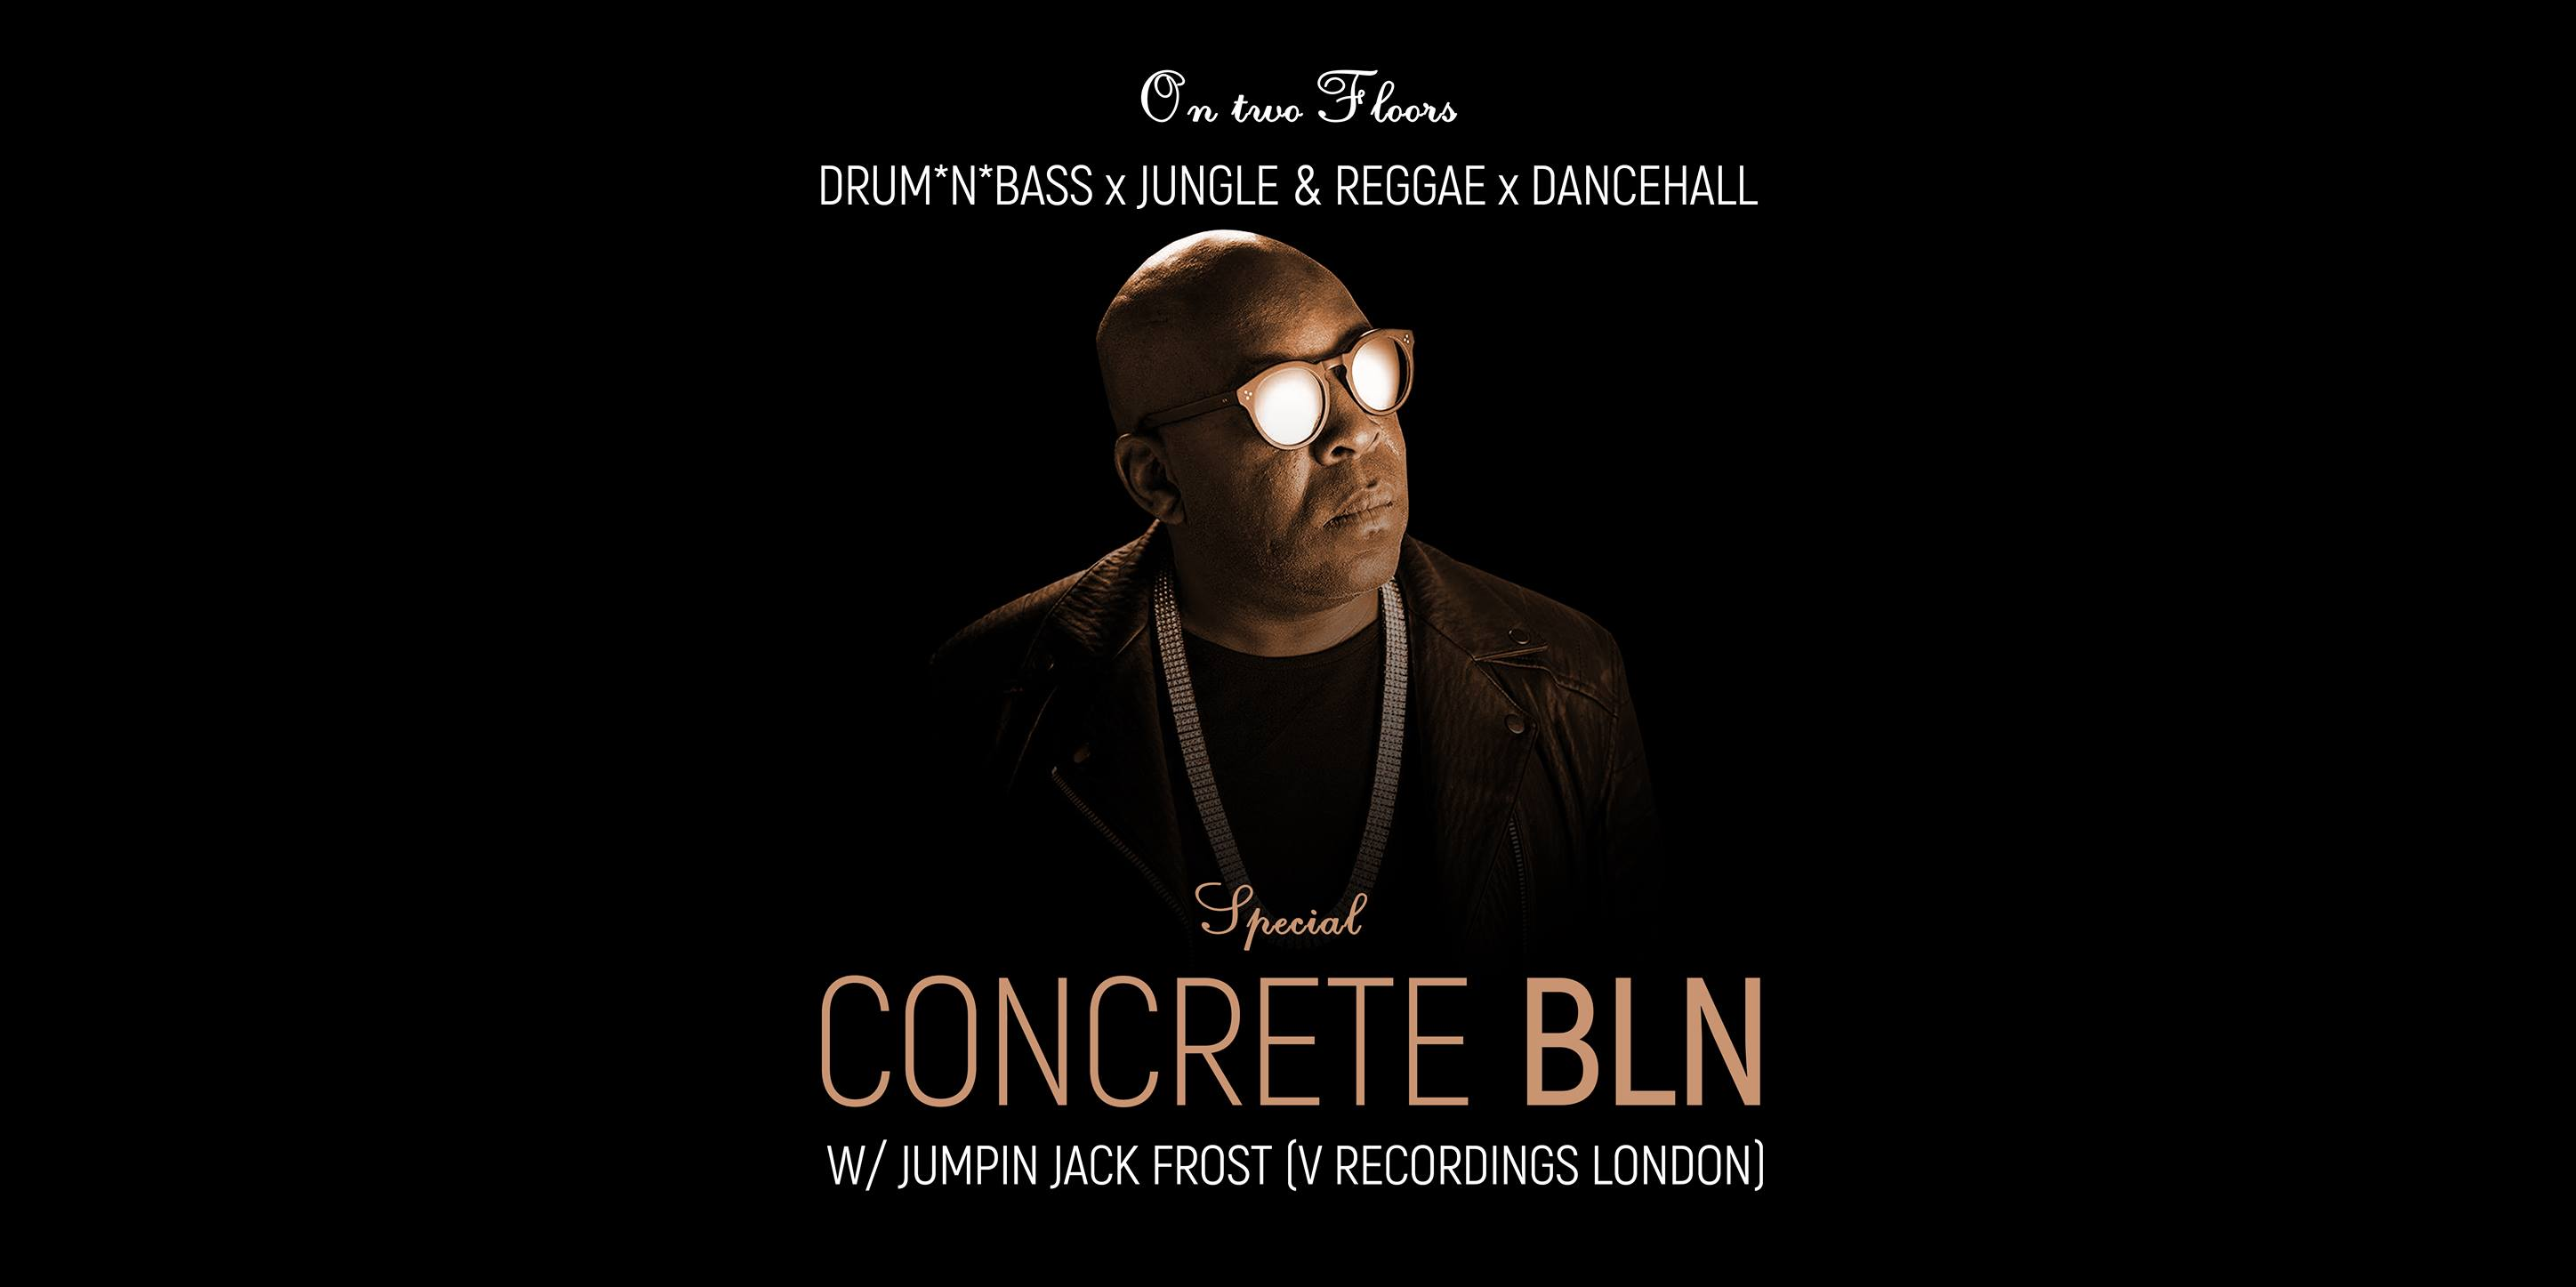 Concrete BLN Special Jumpin Jack Frost